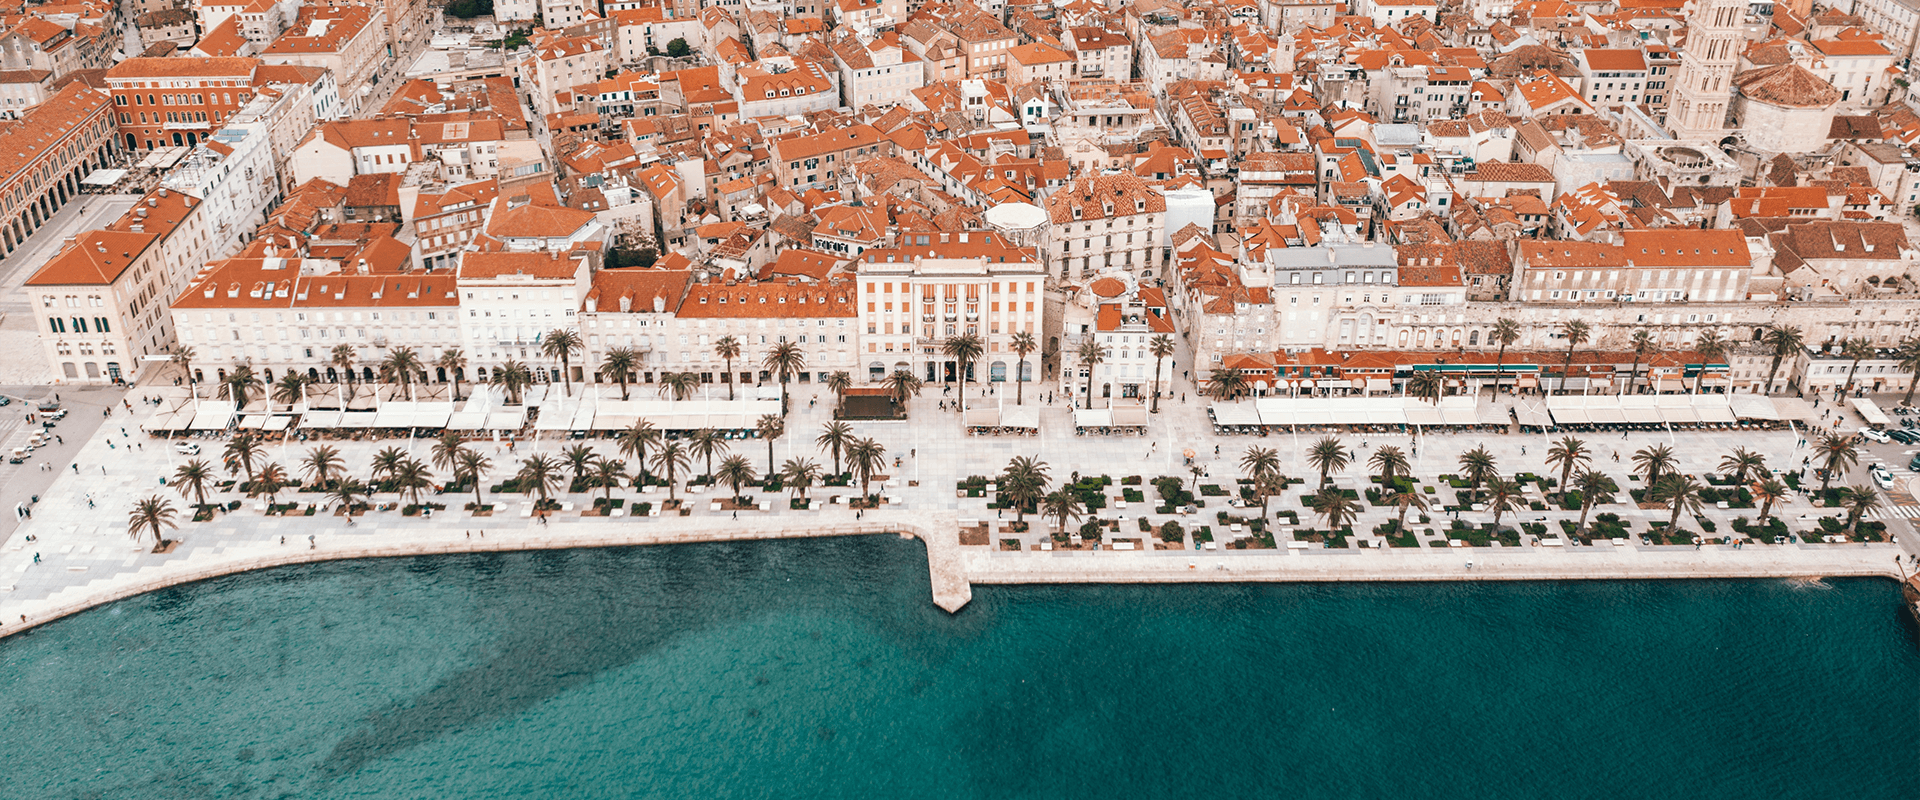 The charm of Croatia and its Dalmatian coast